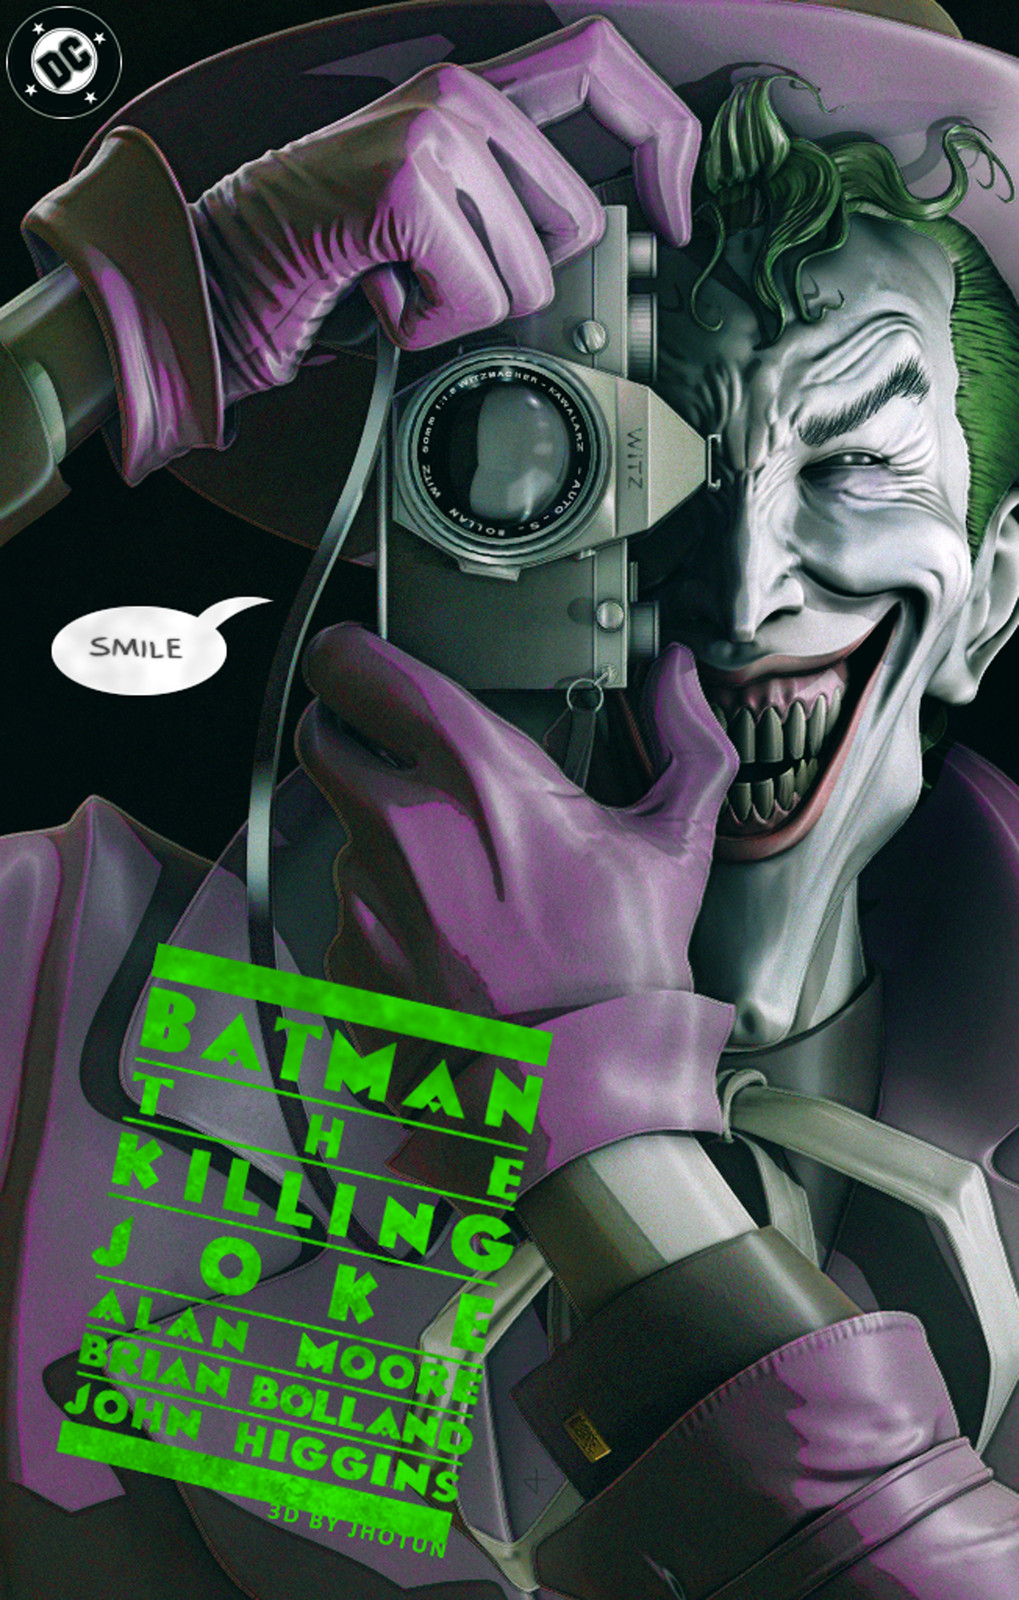 Tribute to the comic book cover Batman The Killing Joke. Loved it.